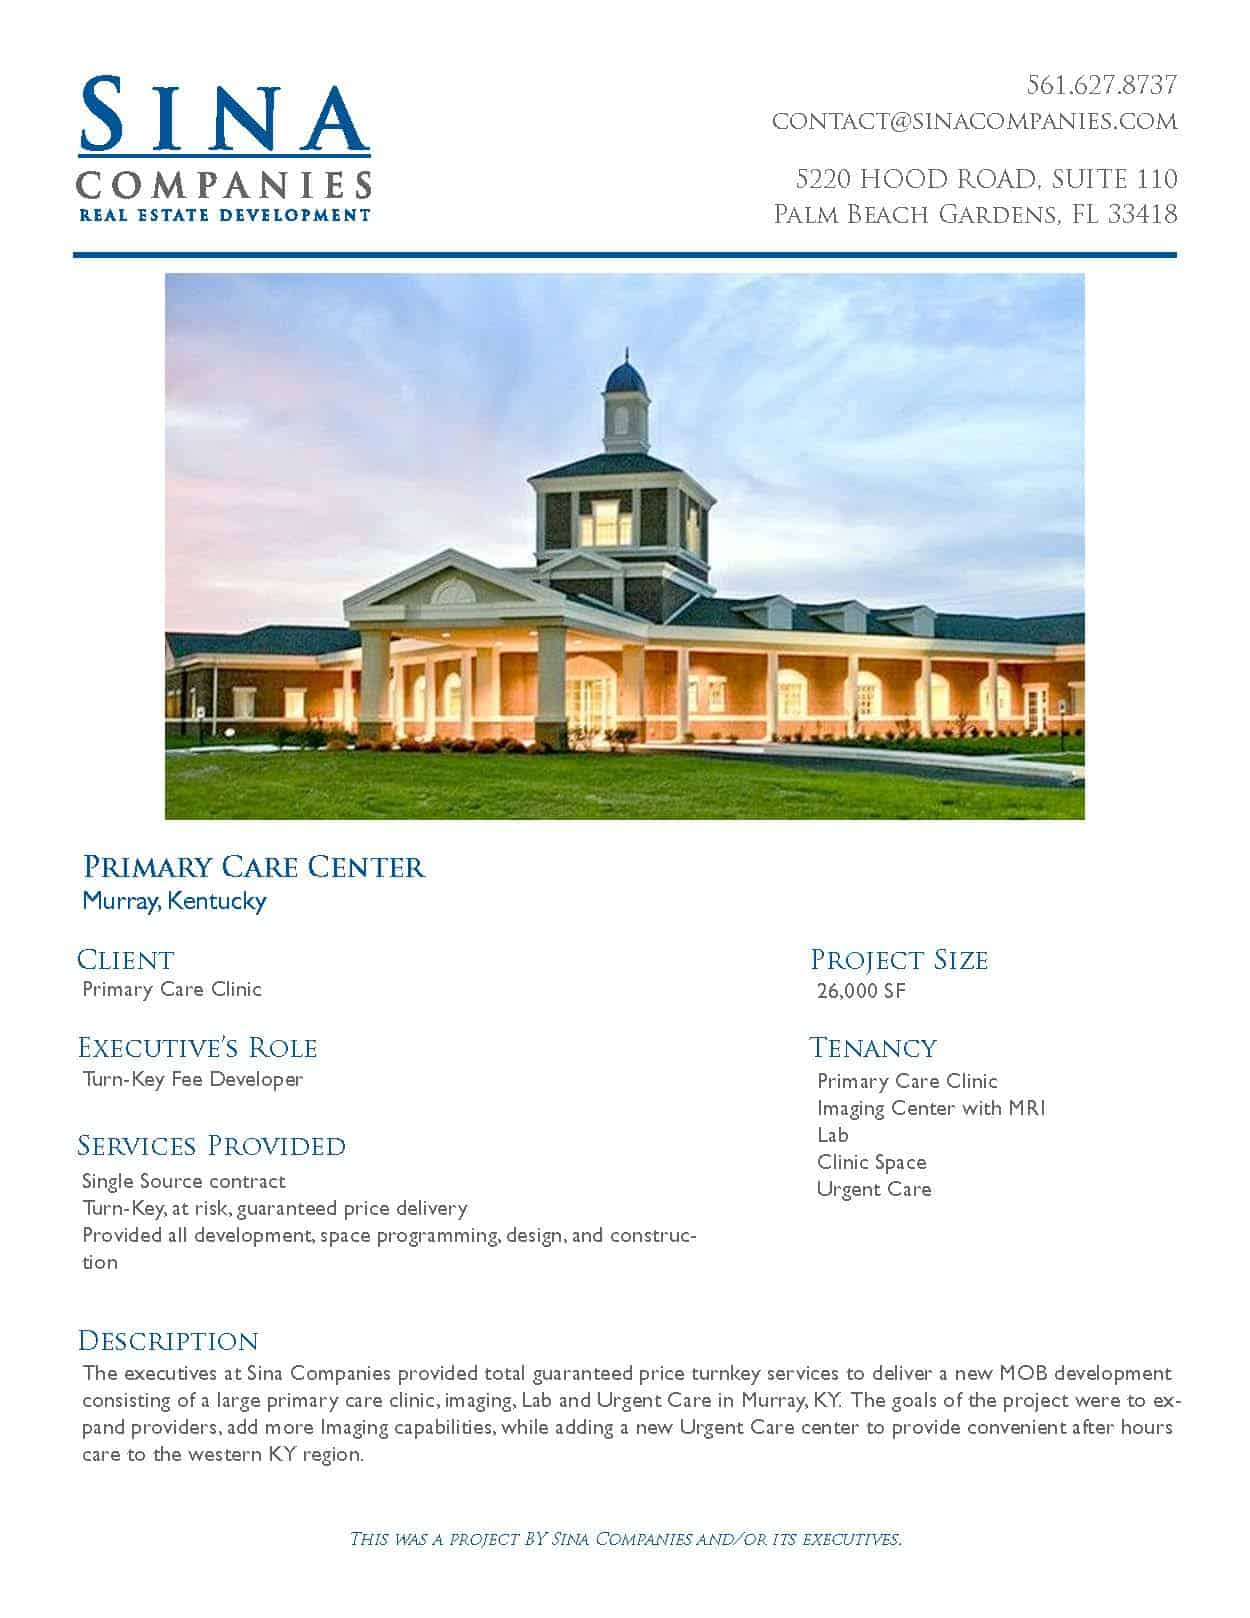 Primary Care Center in Murray, Kentucky